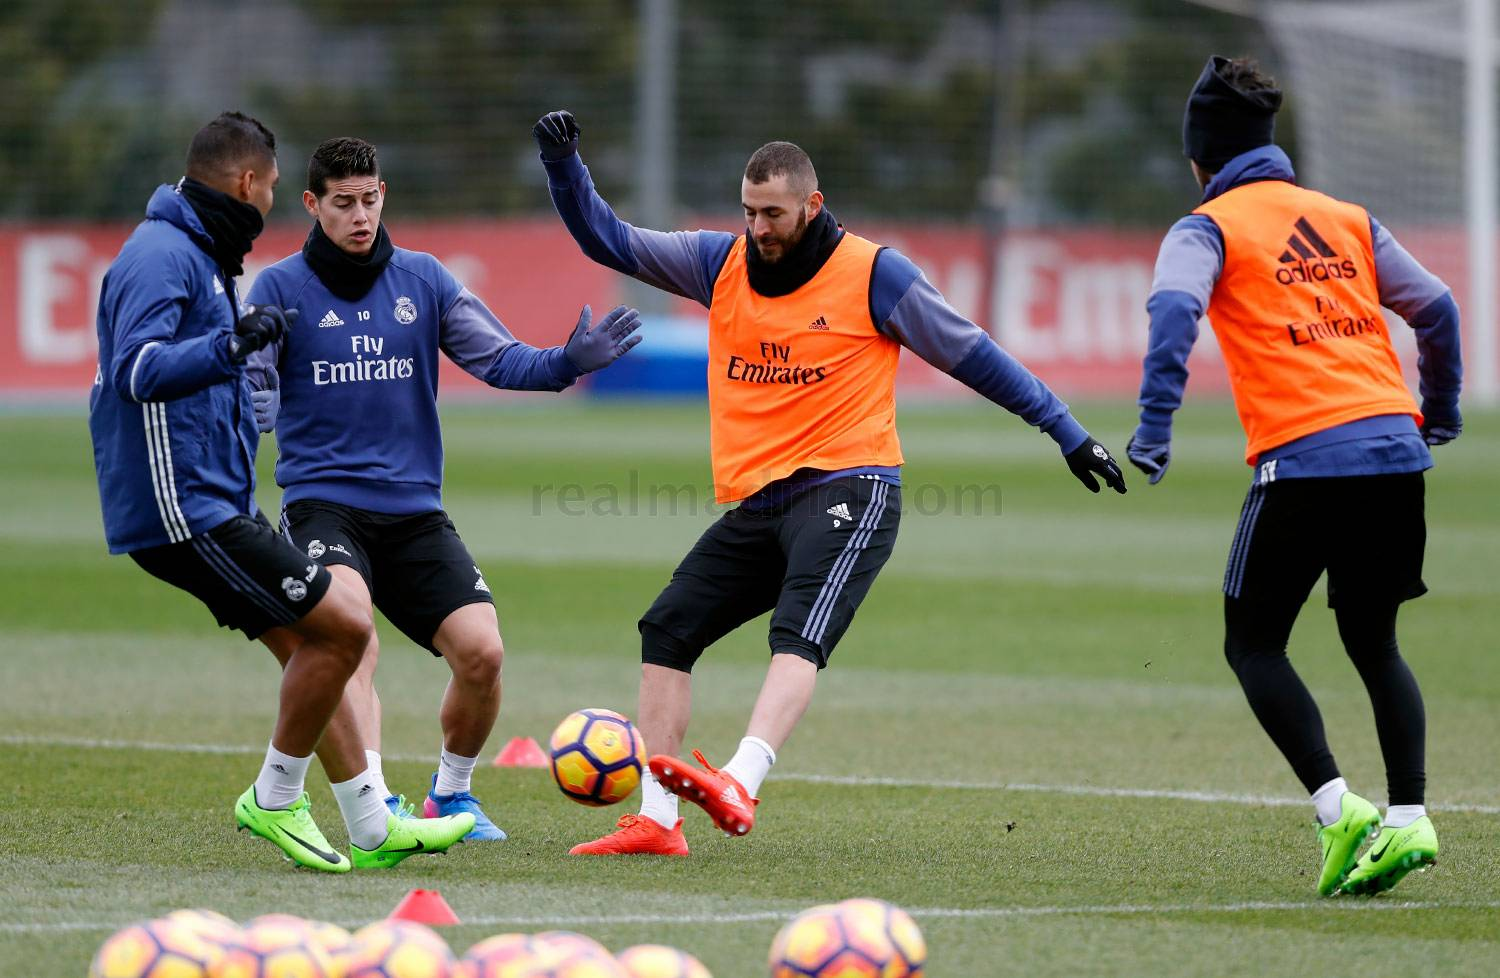 Real Madrid - Entrenamiento del Real Madrid - 03-02-2017